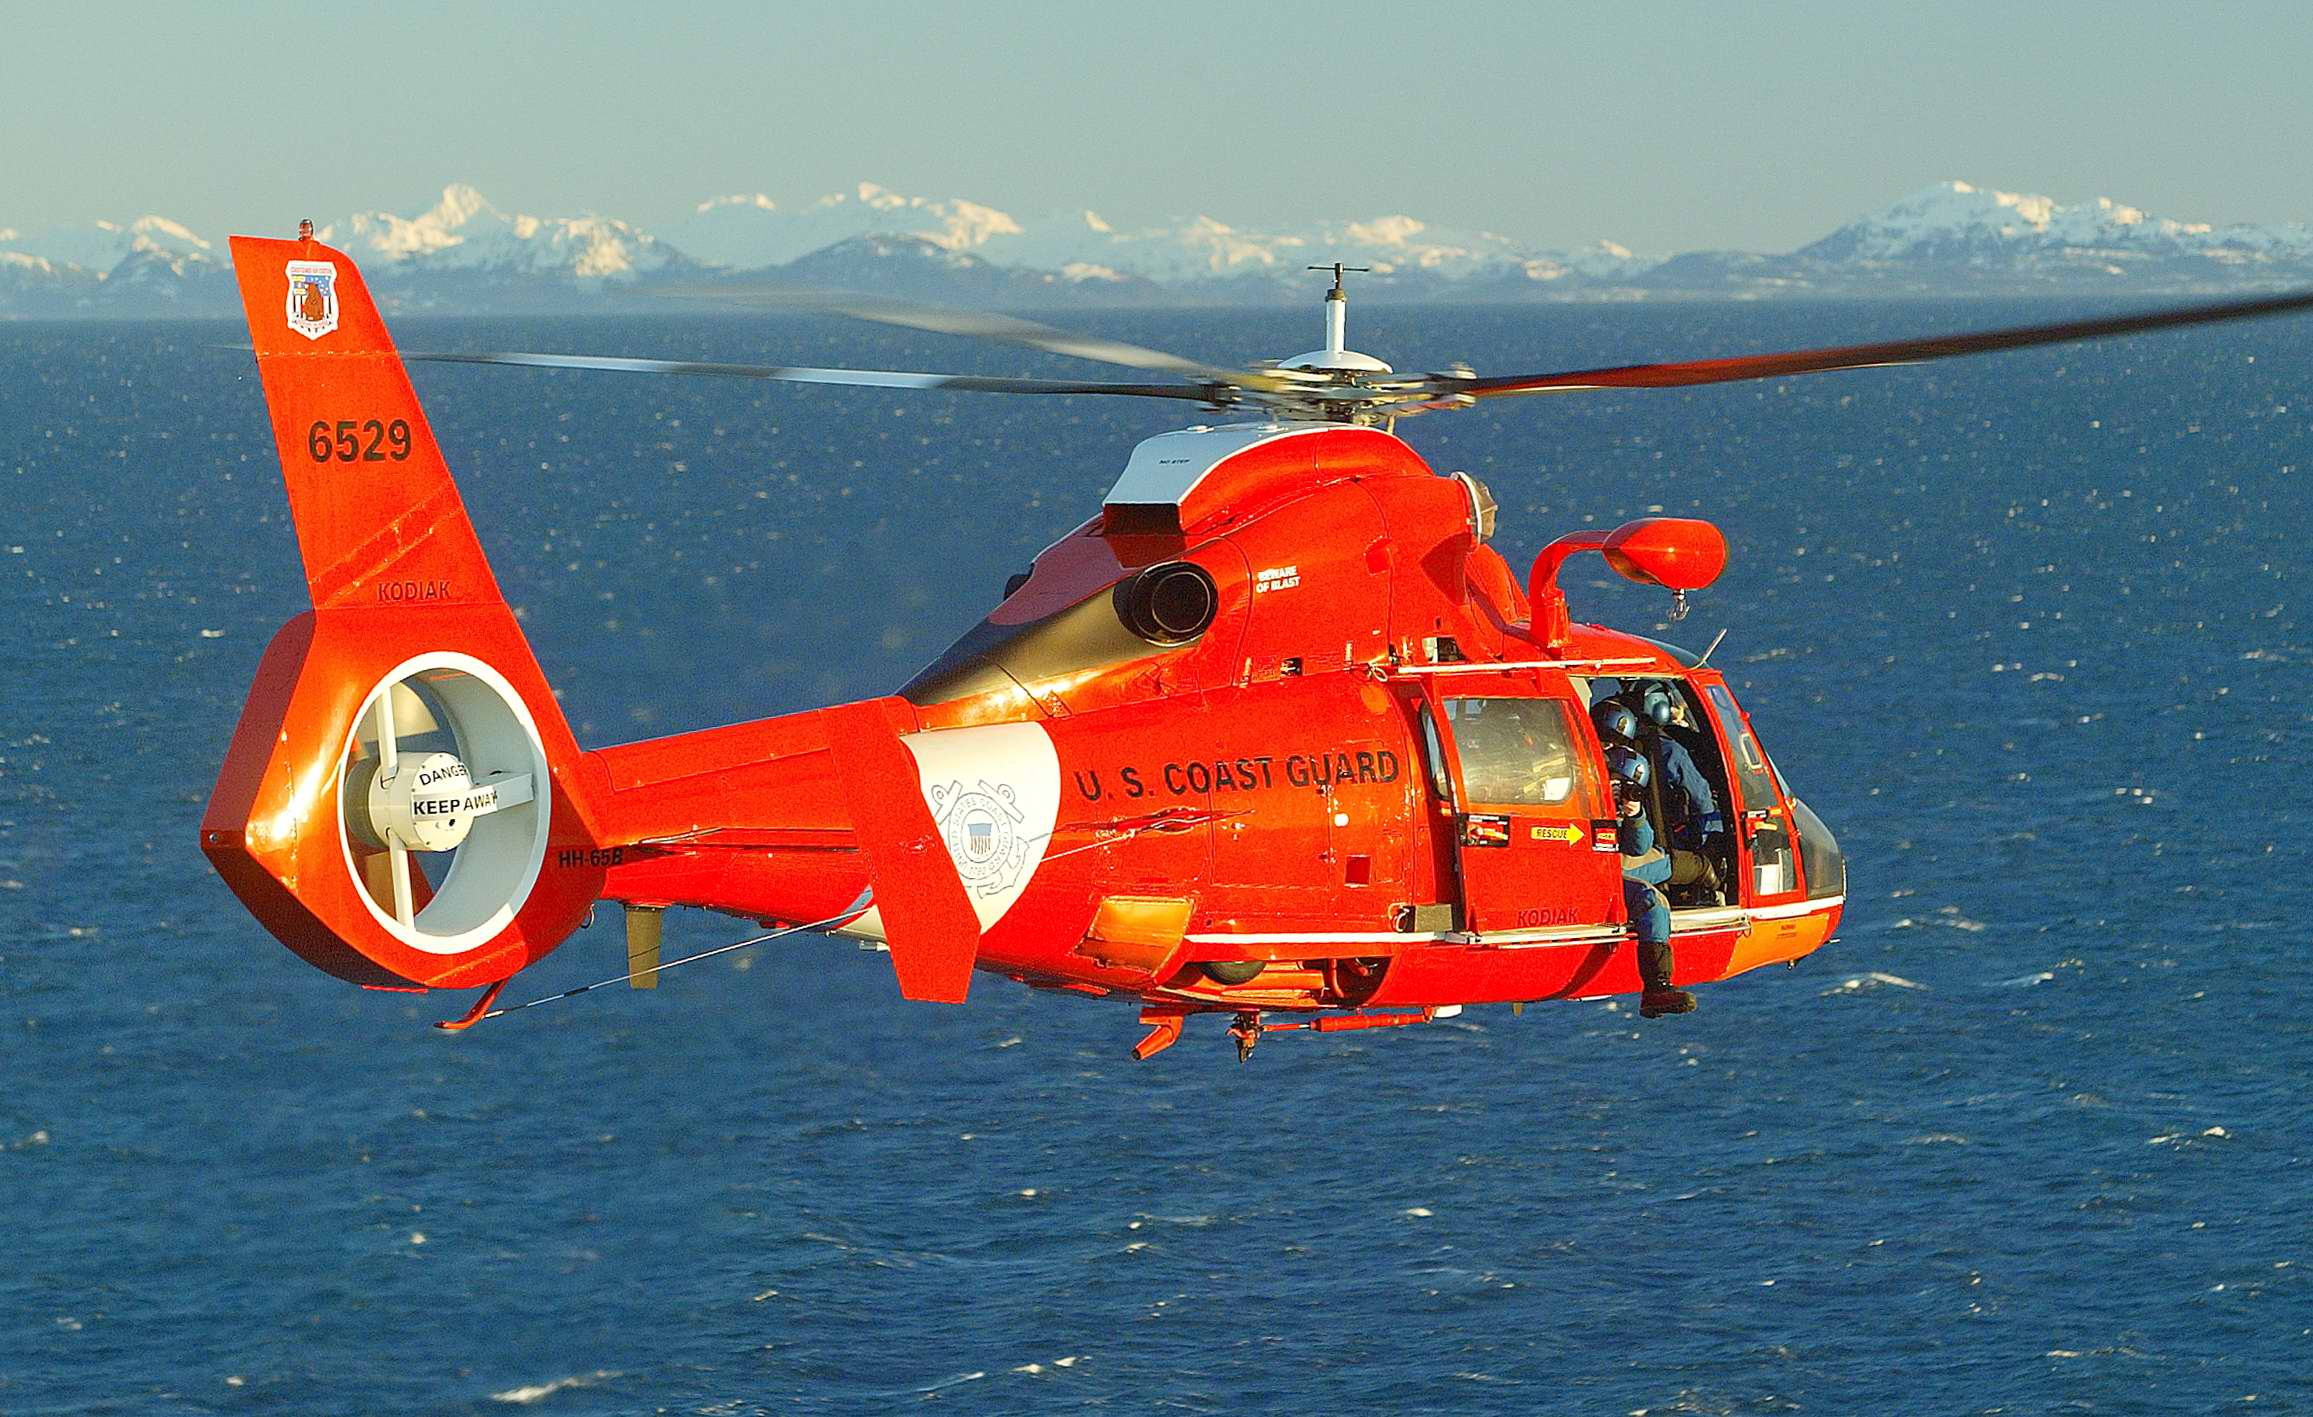 United States Coast Guard Helicopter